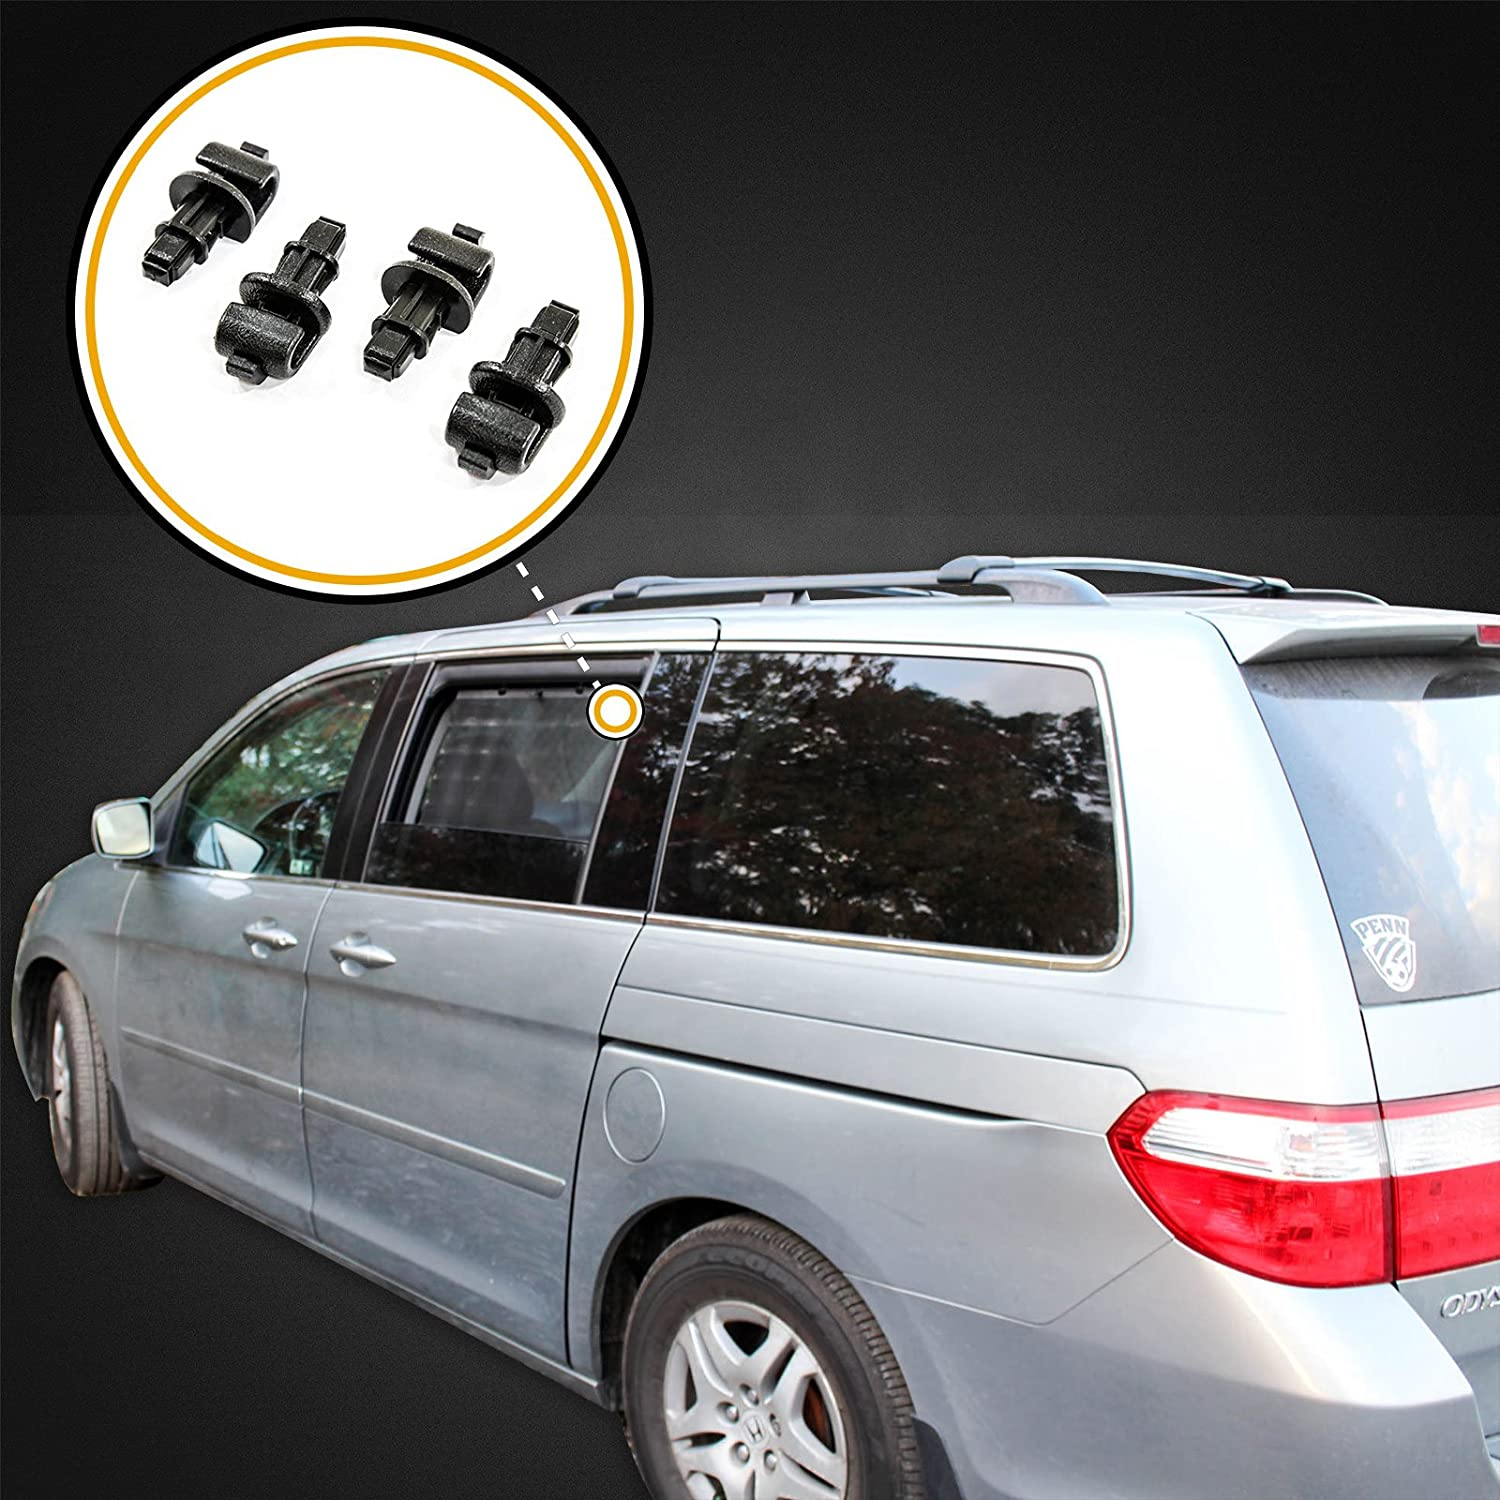 Red Hound Auto 2005-2010 Compatible with Honda Odyssey Black 4 Sun Shade Hook Sliding Door Clip Kit